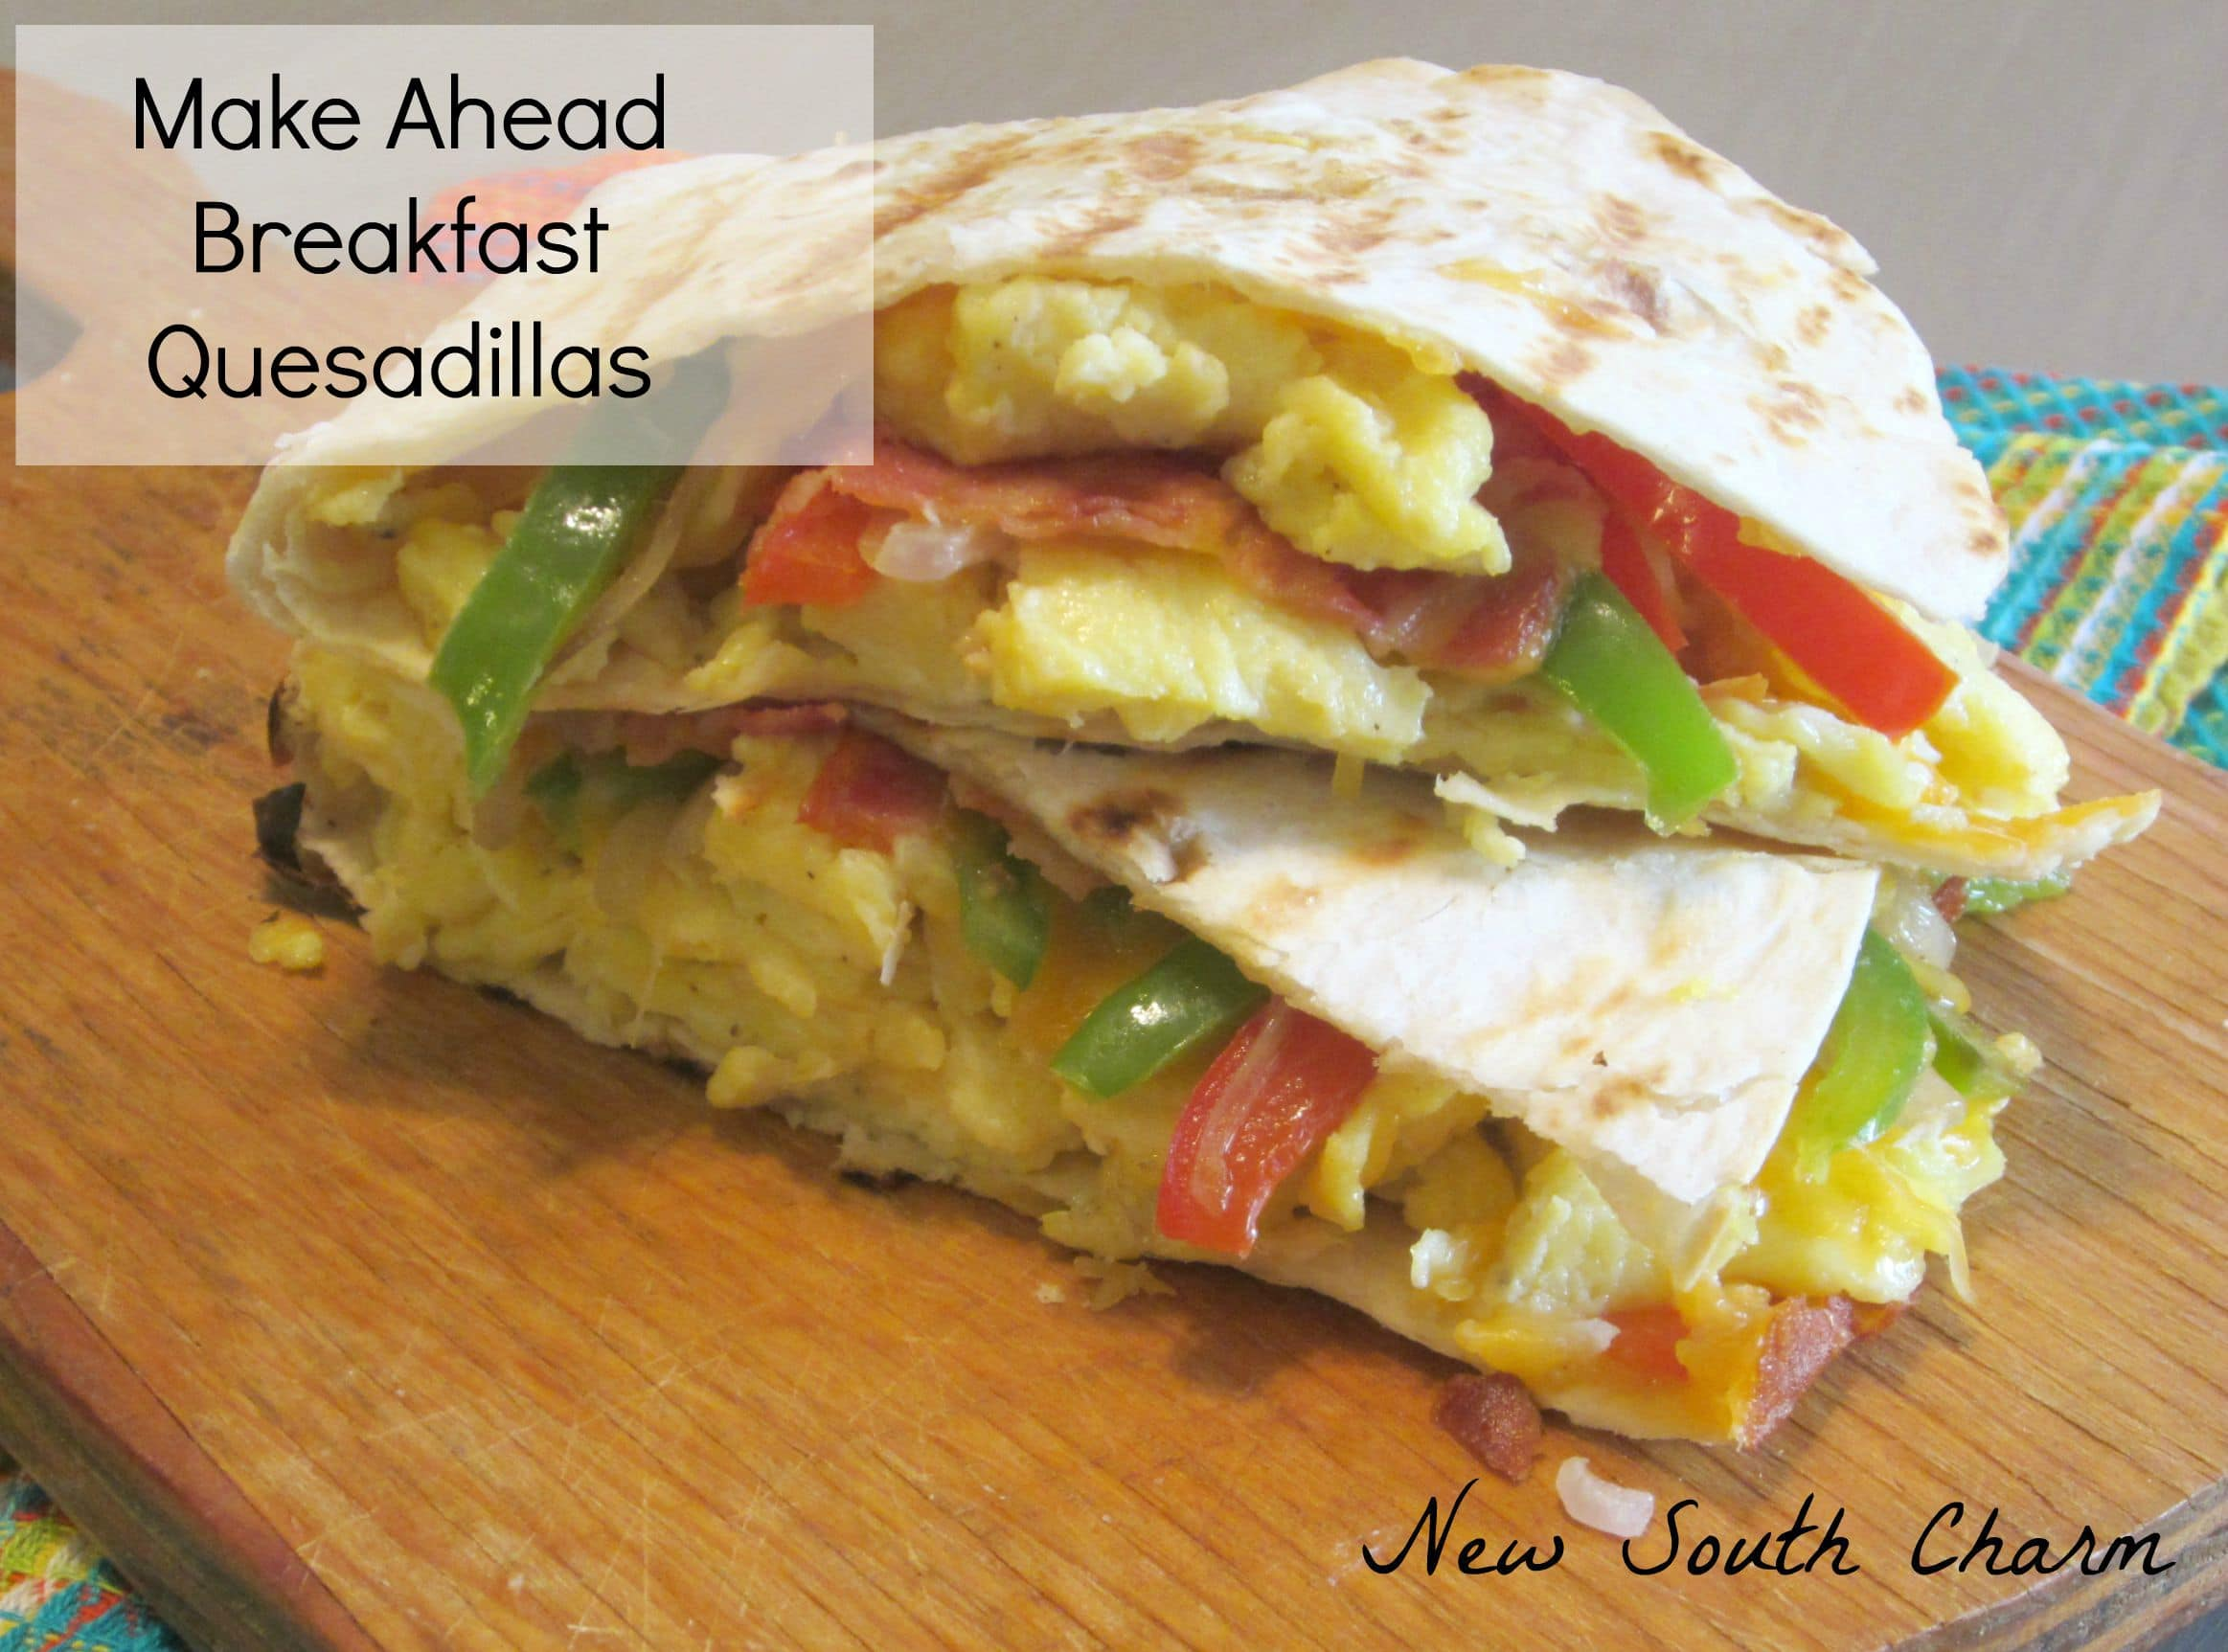 Make Ahead Breakfast Quesadillas FB